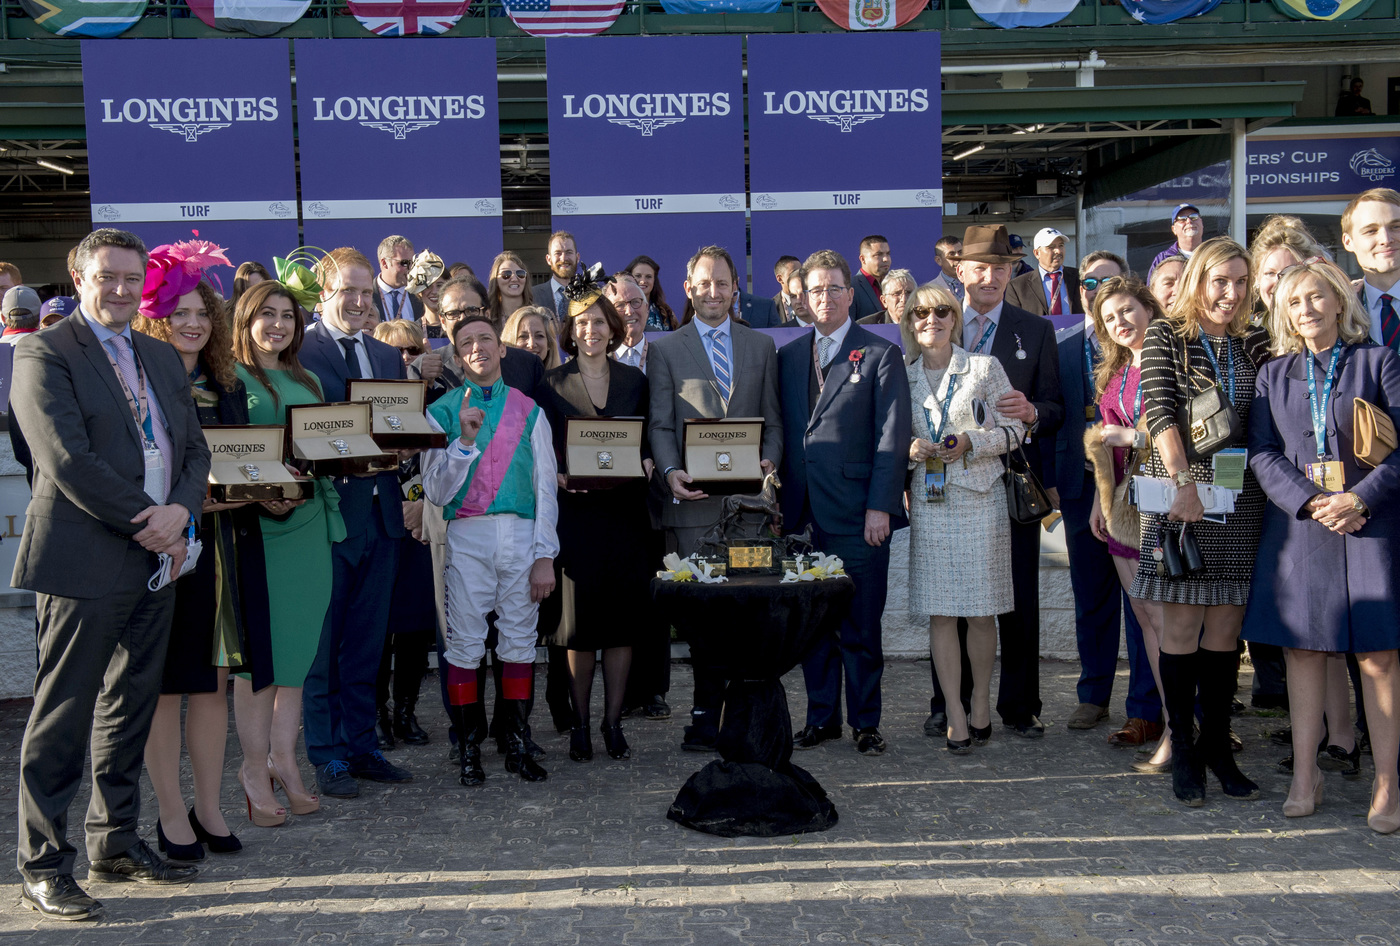 Longines Flat Racing Event: Longines proudly times 2018 Breeders' Cup World Championships in Louisville 8